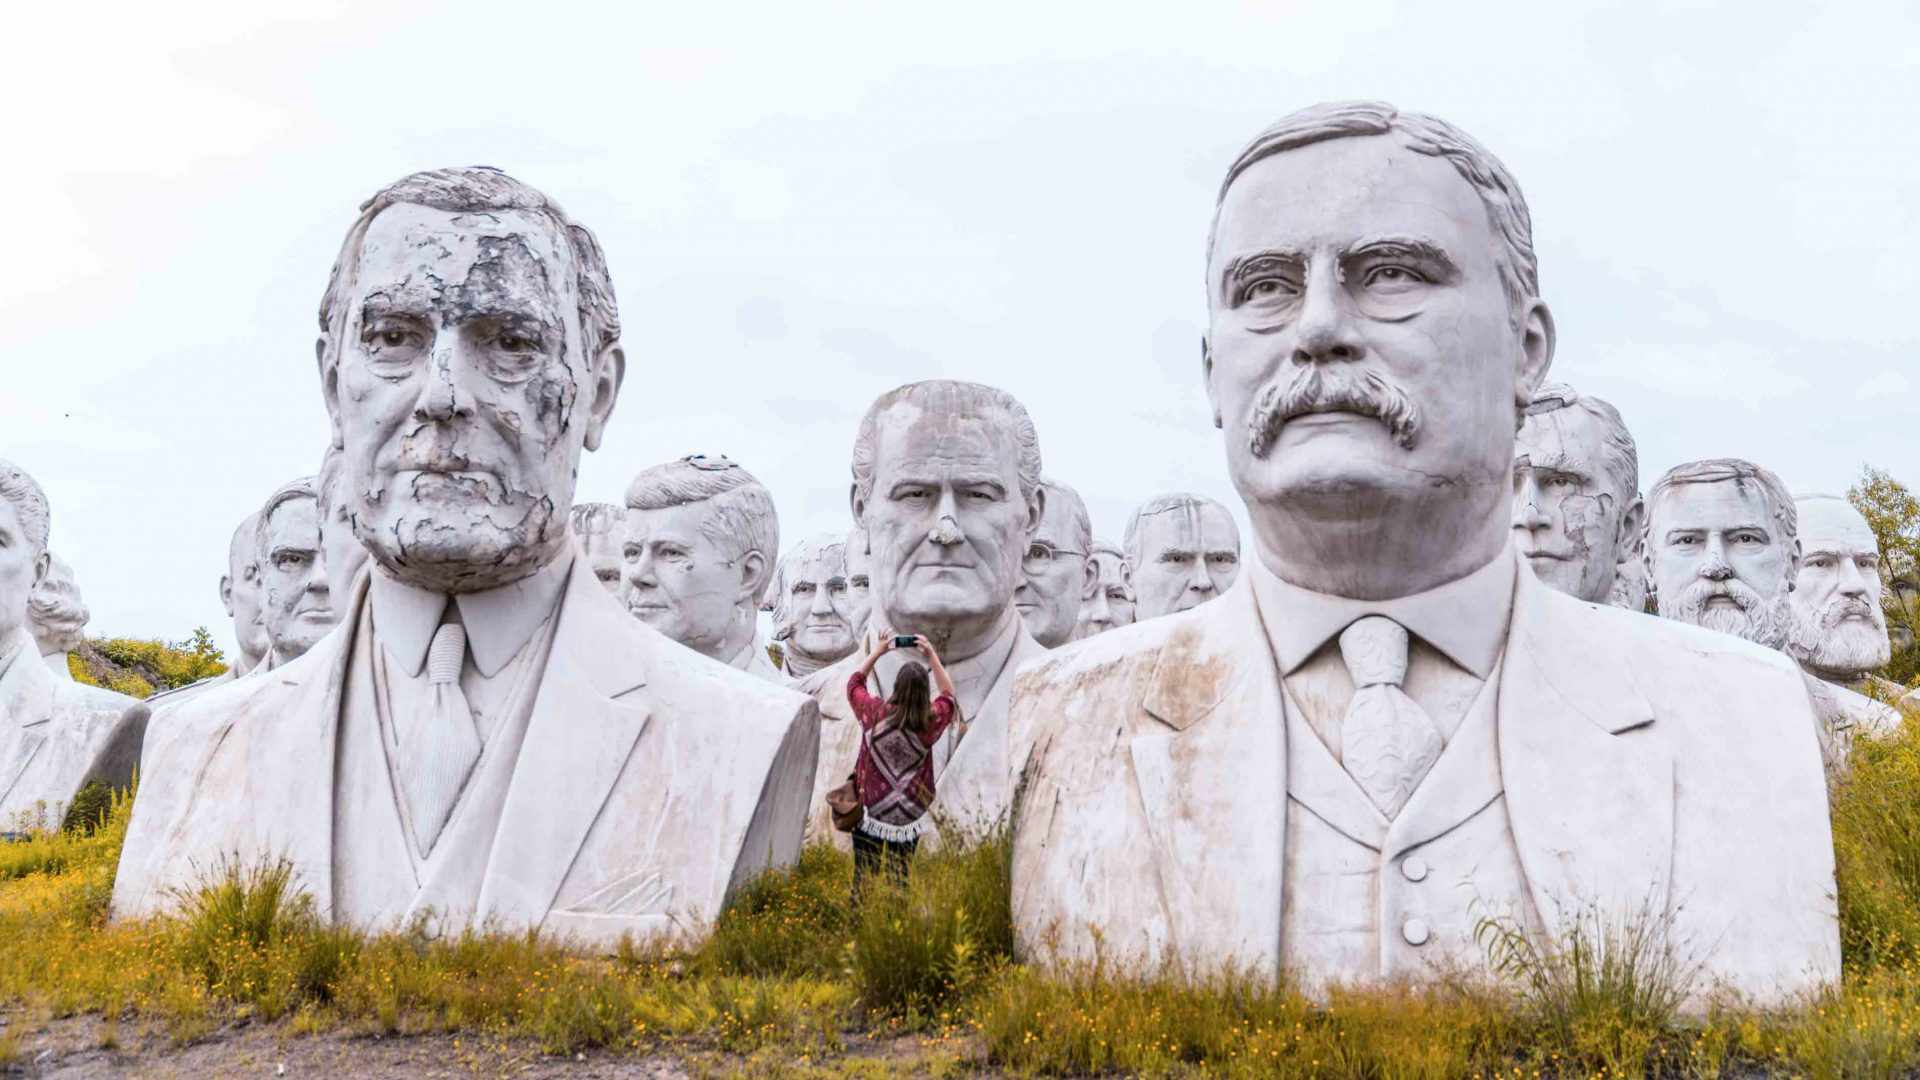 How 43 president heads ended up abandoned on Virginia farmland